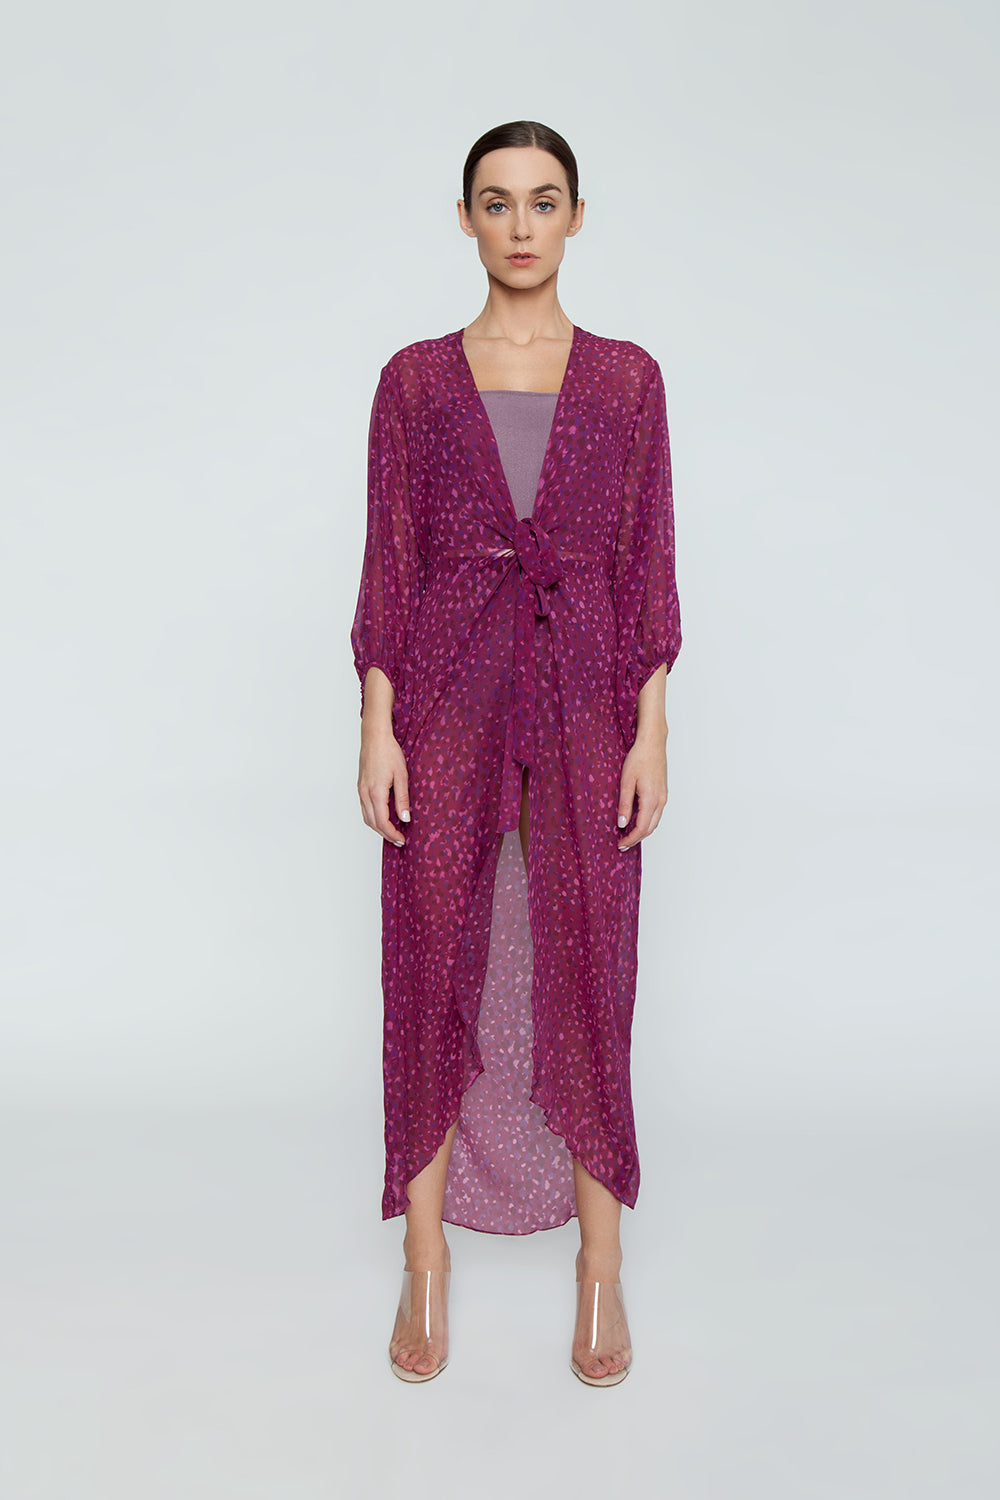 8836f2e2fb70 ... ADRIANA DEGREAS Silk Georgette Long Robe Cover-Up - Pomegranate Pink  Print - undefined undefined